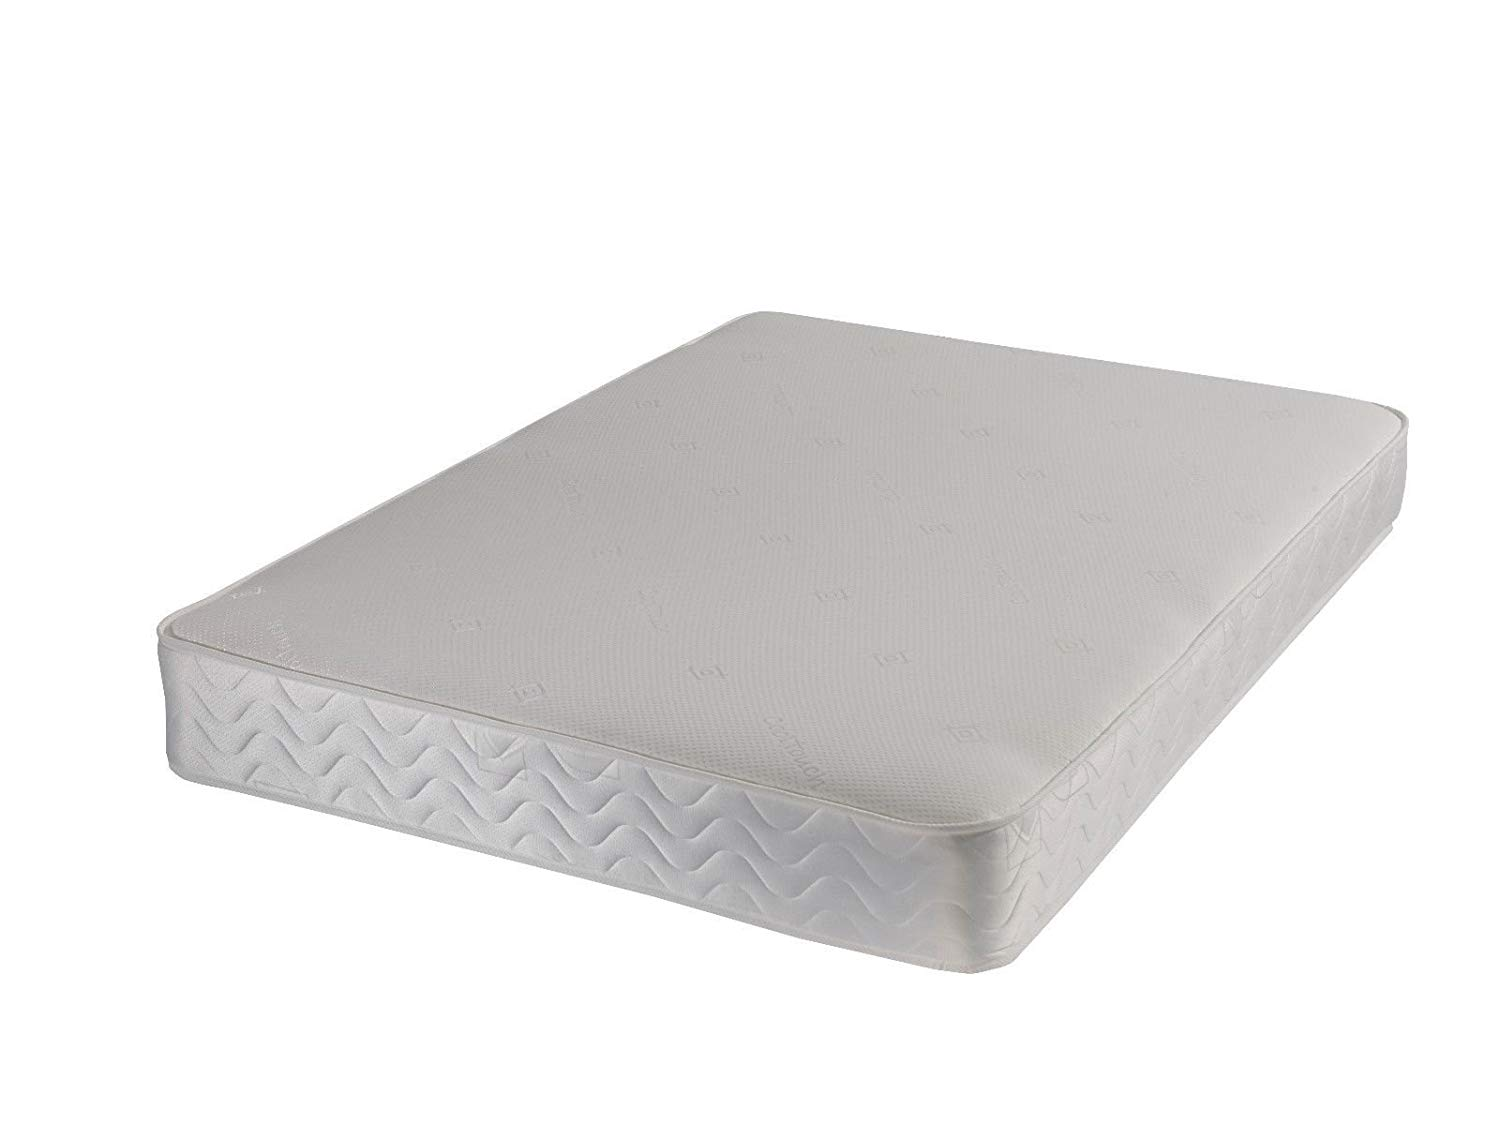 Memory spring cool touch orthopaedic mattress - Damask cover - 4ft6 double